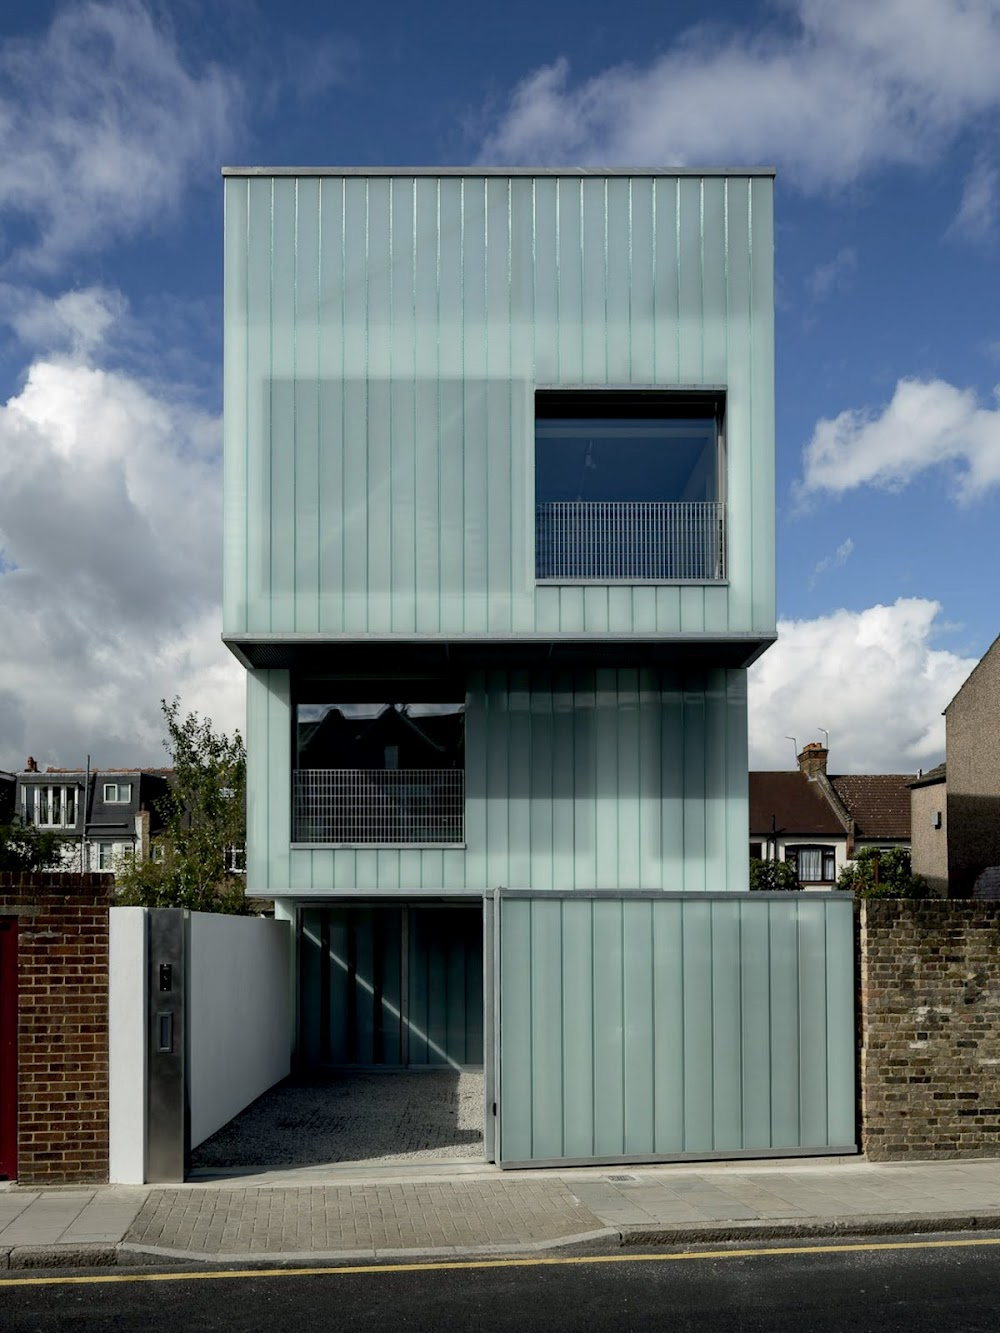 A379, Plymouth, Devon Pl8, Regno Unito: Slip House by Carl Turner Architects